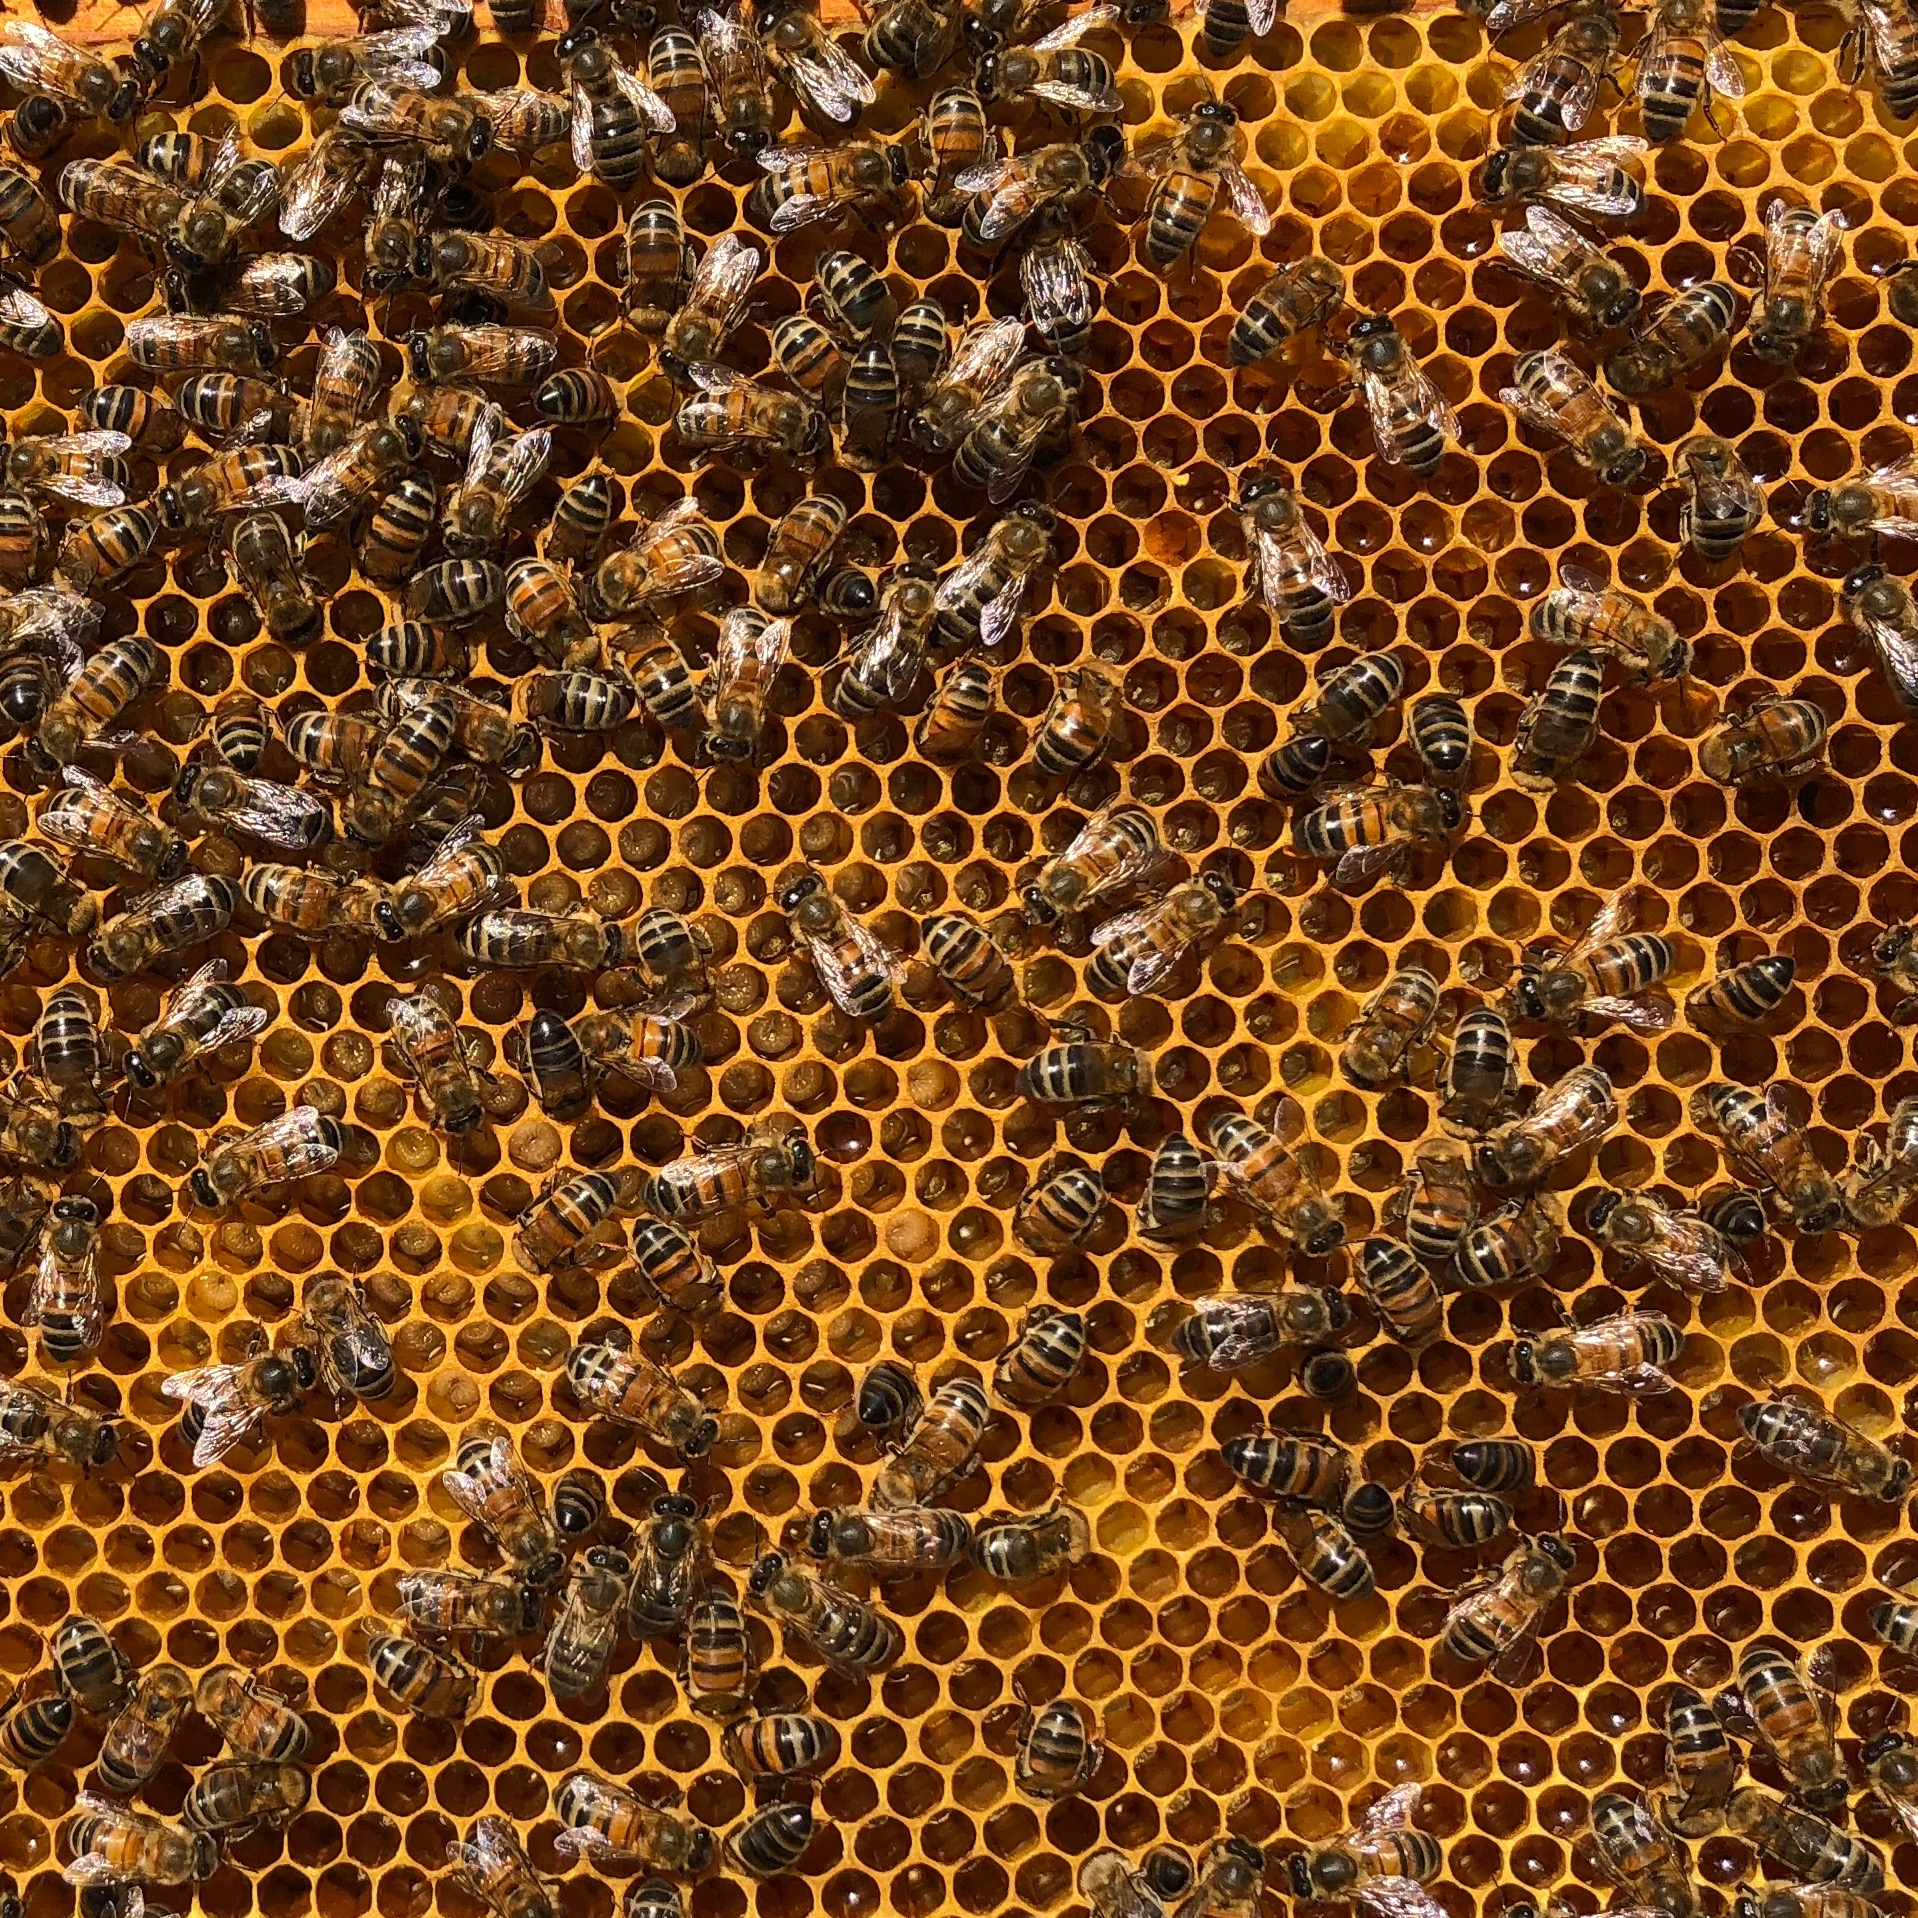 Lovely uncapped brood.